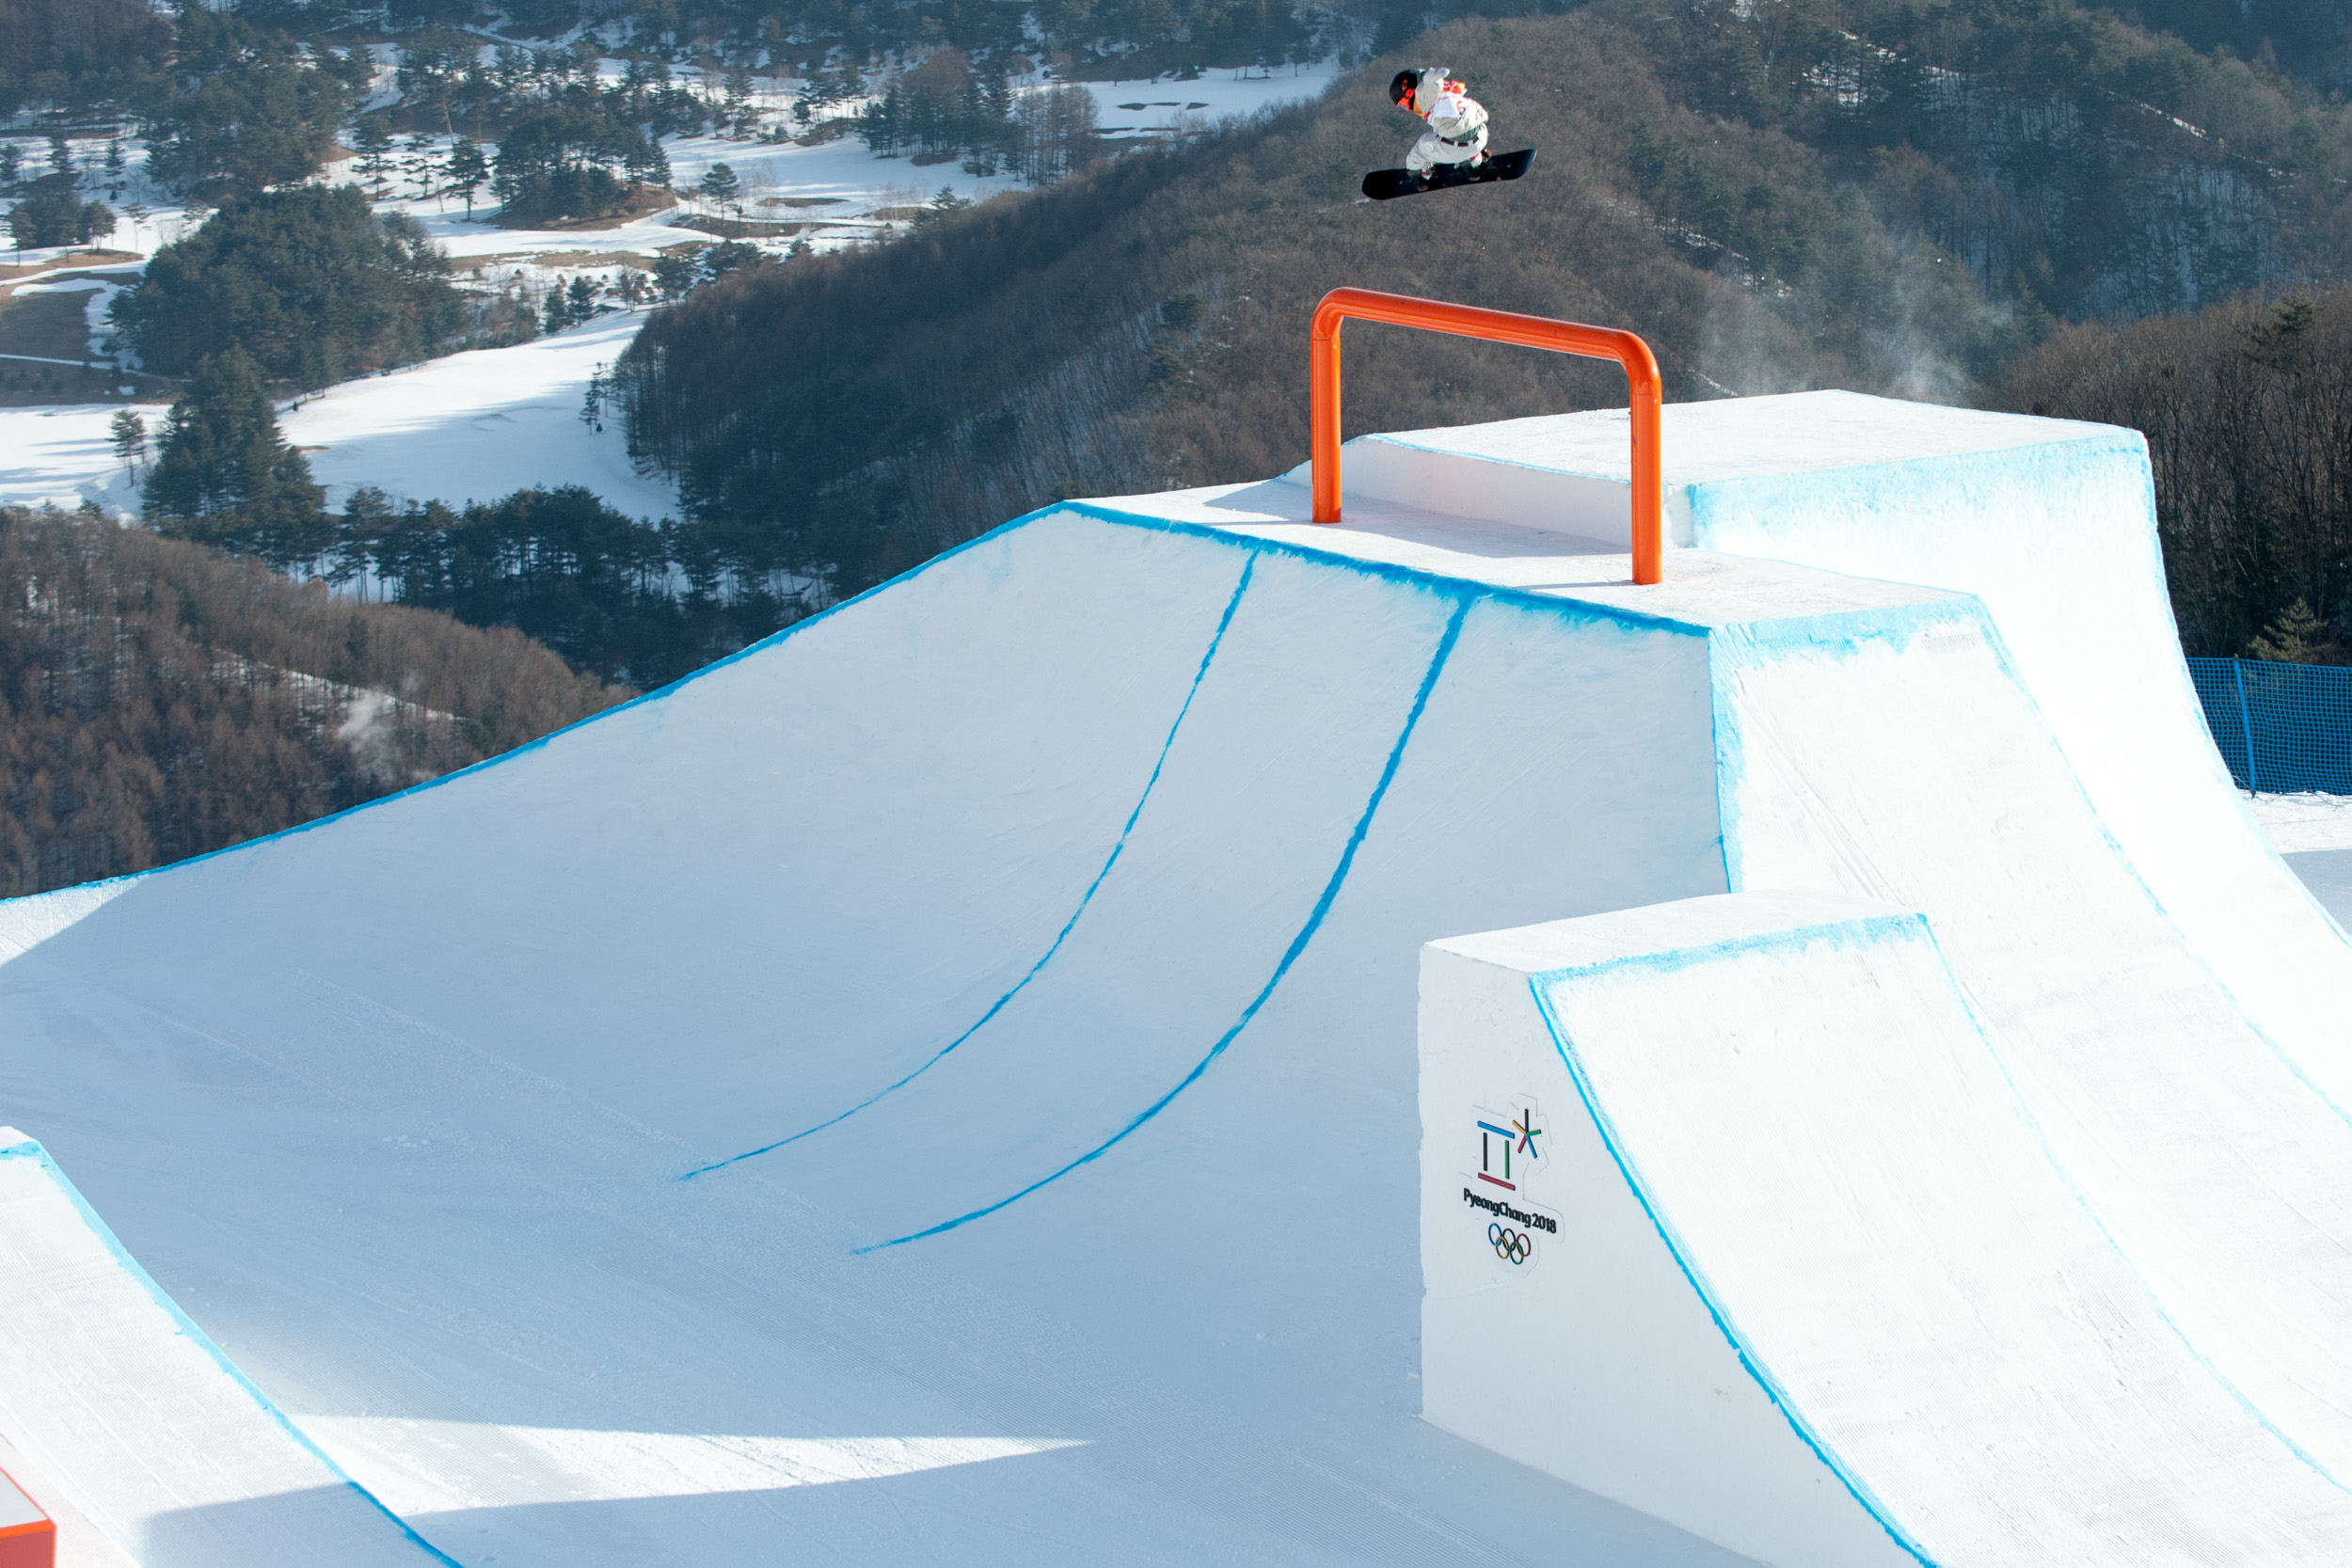 Gerard only American to qualify for men's slopestyle final